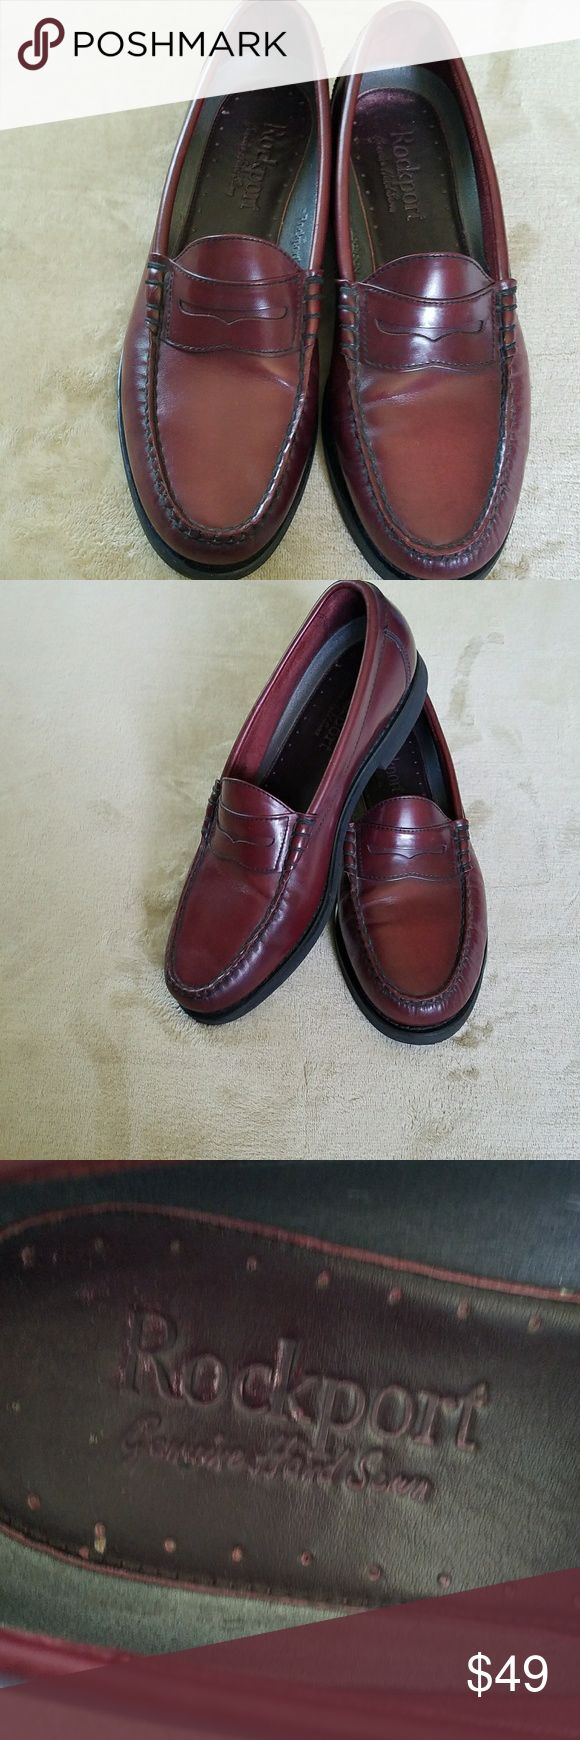 ROCKPORT LOAFERS WITH VIBRAM SOLES CORDOVAN  11 M ROCKPORT PENNEY LOAFERS WITH VIBRAM SOLES IN EXCELLENT CONDITION.  So classic are these great shoes! Perfect for casual or career. Size 11 M Cordovan leather upper and lining. A little wear on back part of heels see pics. Rockport Shoes Loafers & Slip-Ons